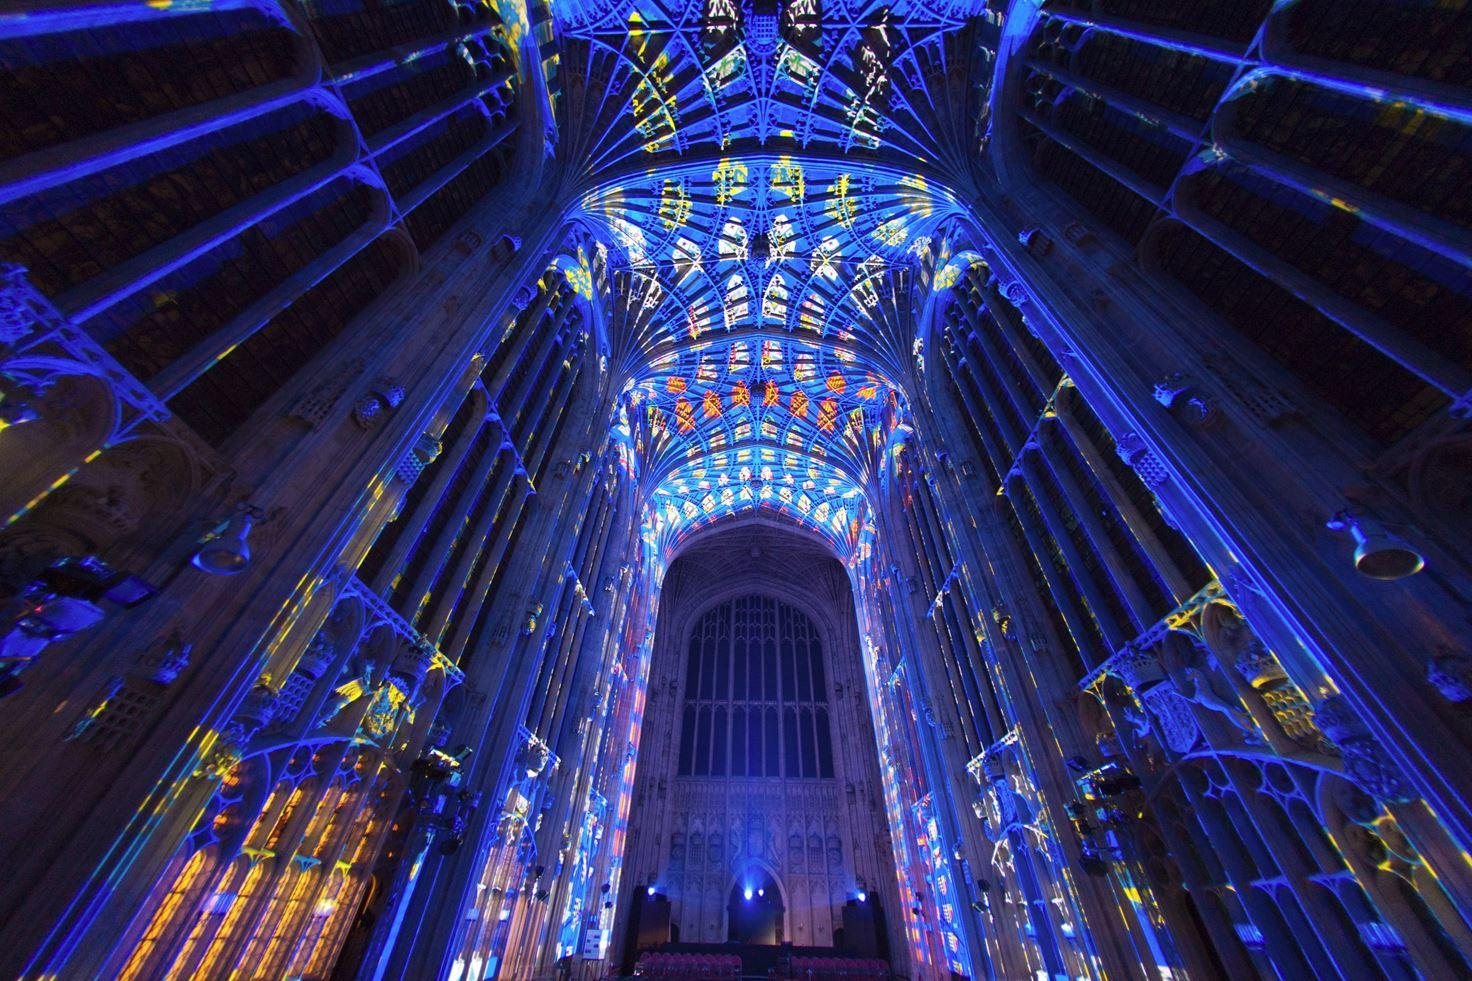 Immersive Projections in King's College Chapel, University of Cambridge